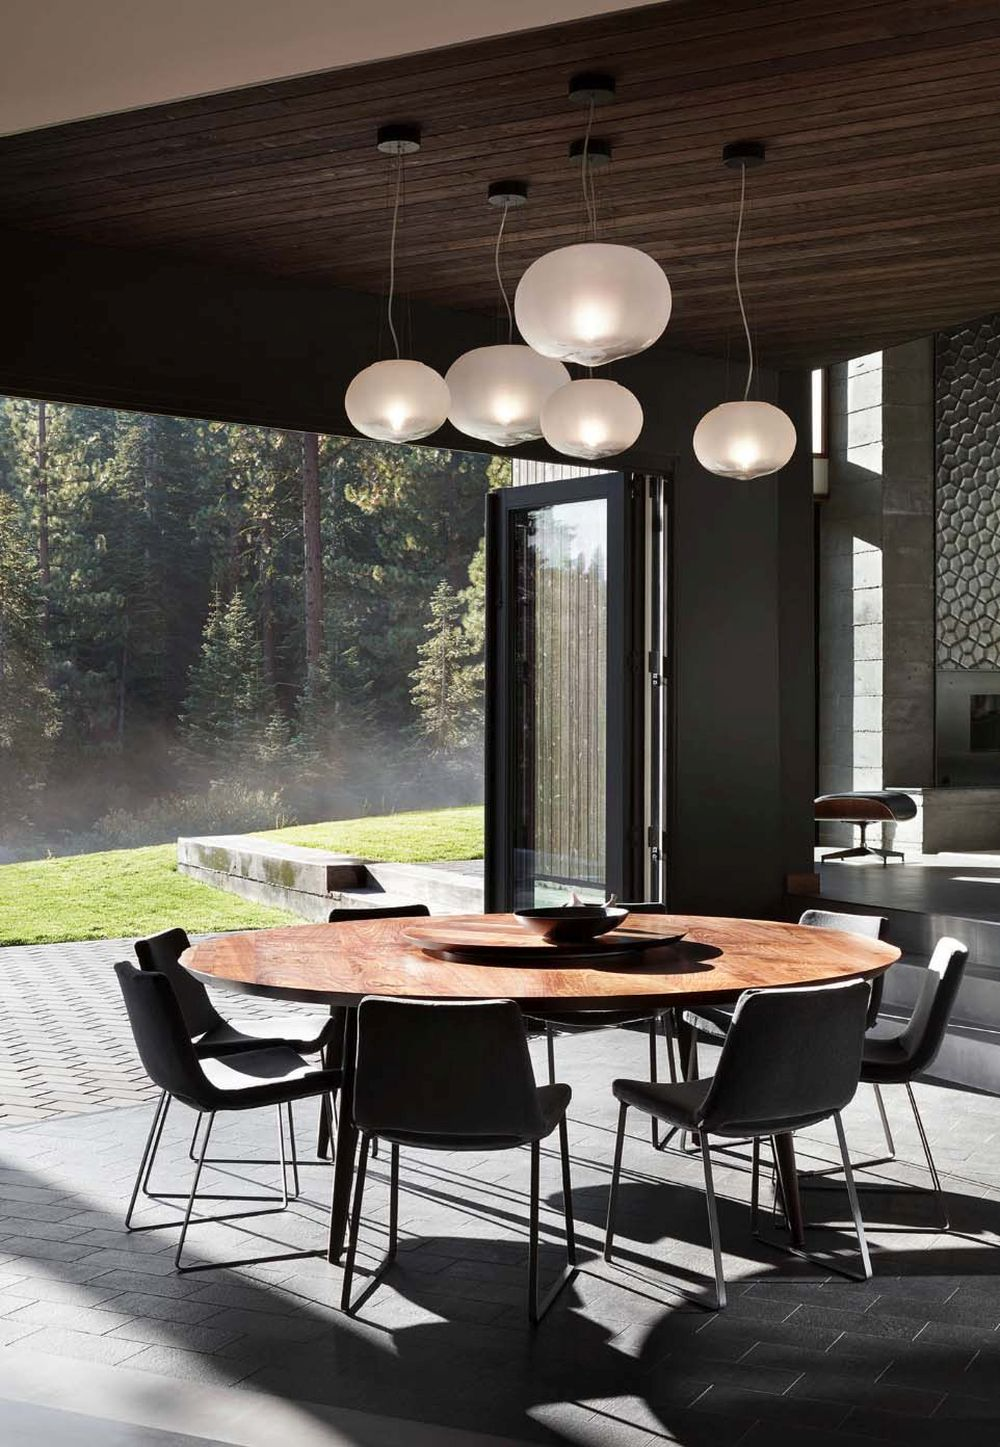 The dining area can be directly connected to the backyard by opening up the folding glass doors